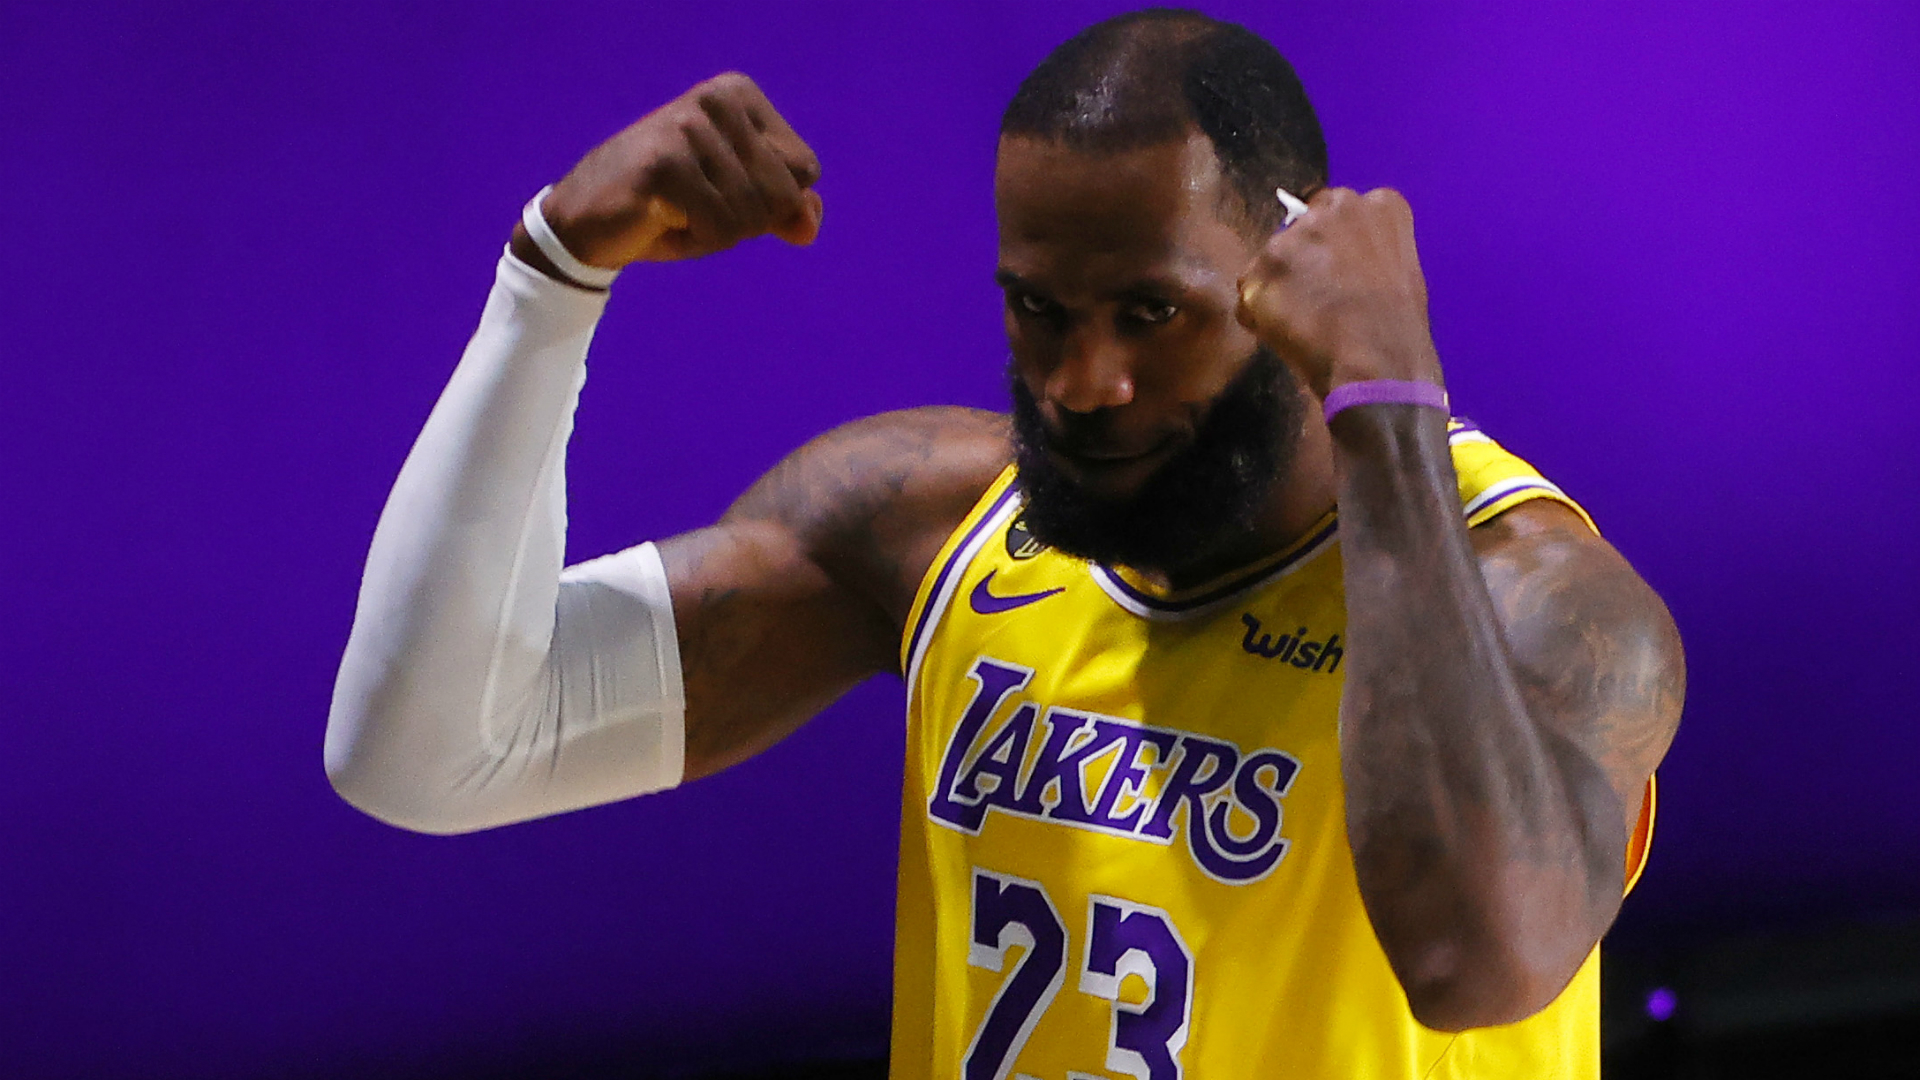 LeBron and Davis lead Lakers into second round, Bucks also advance as playoffs resume